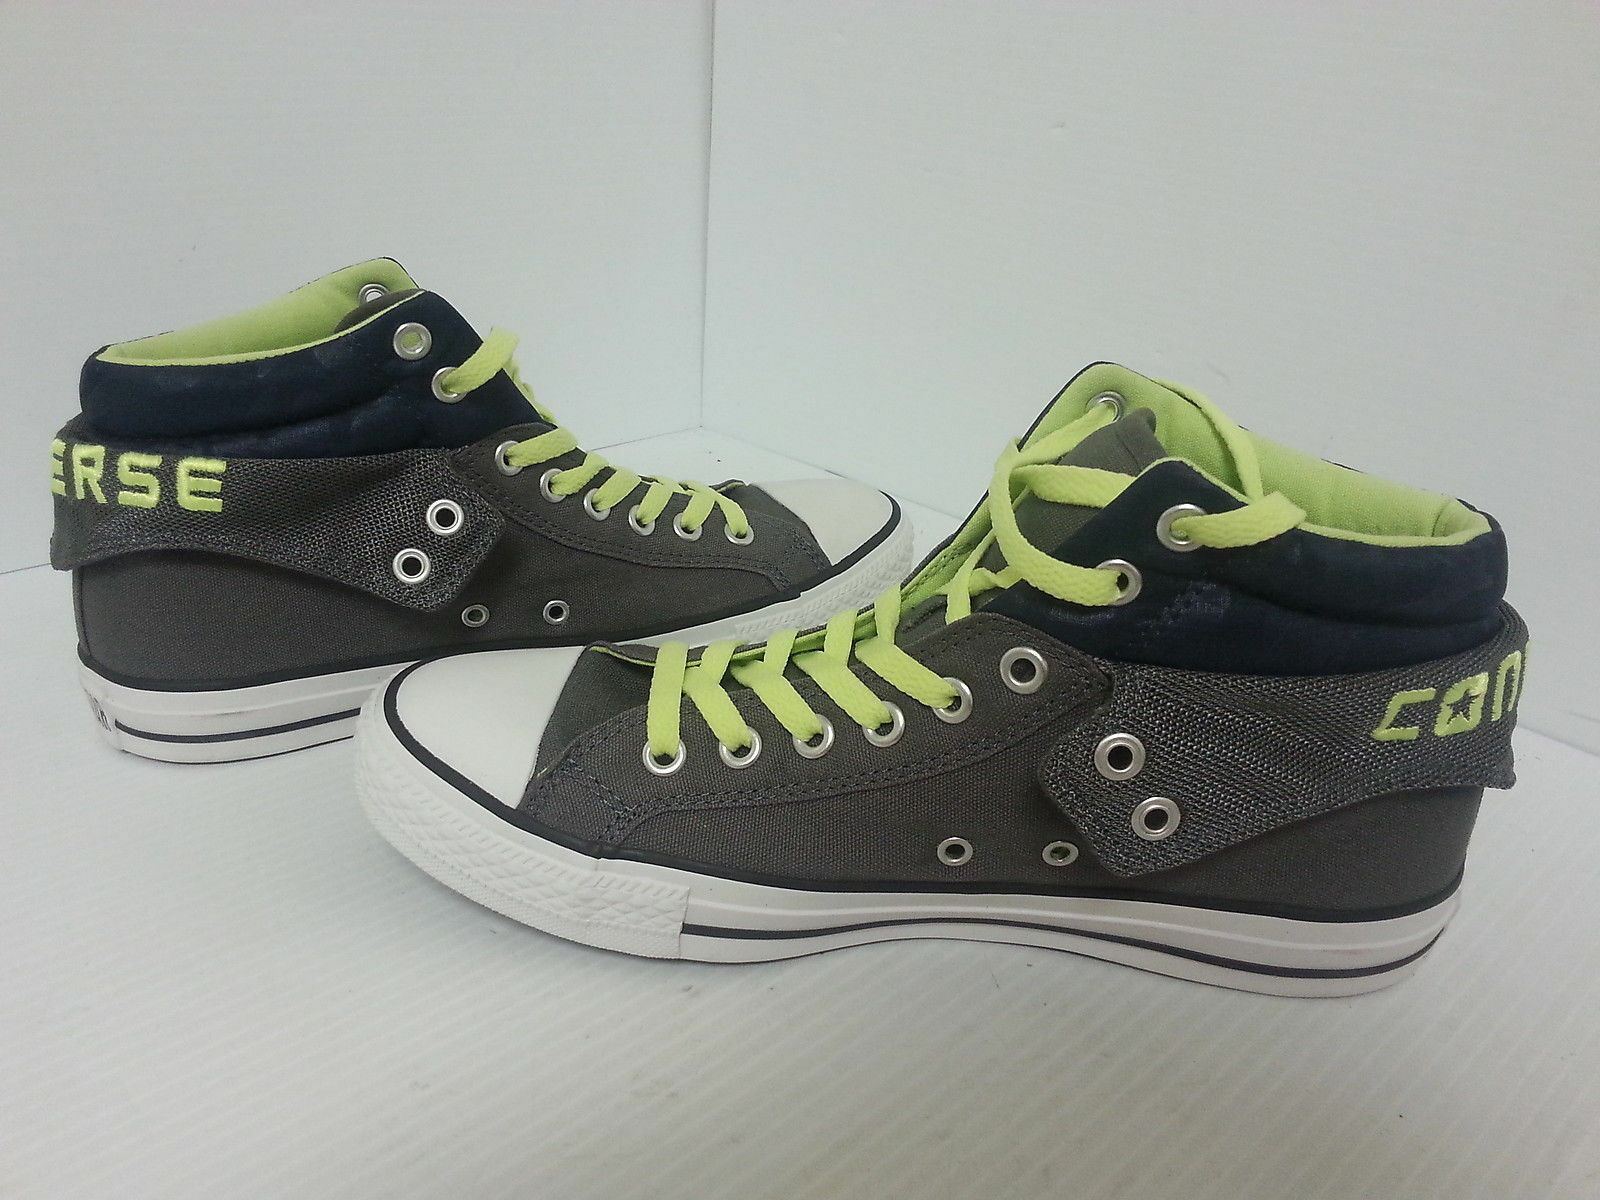 CONVERSE ALL STAR CHUCK TAYLOR Hommes Chaussures anthracite vert  39639 F Taille 10 NEUF